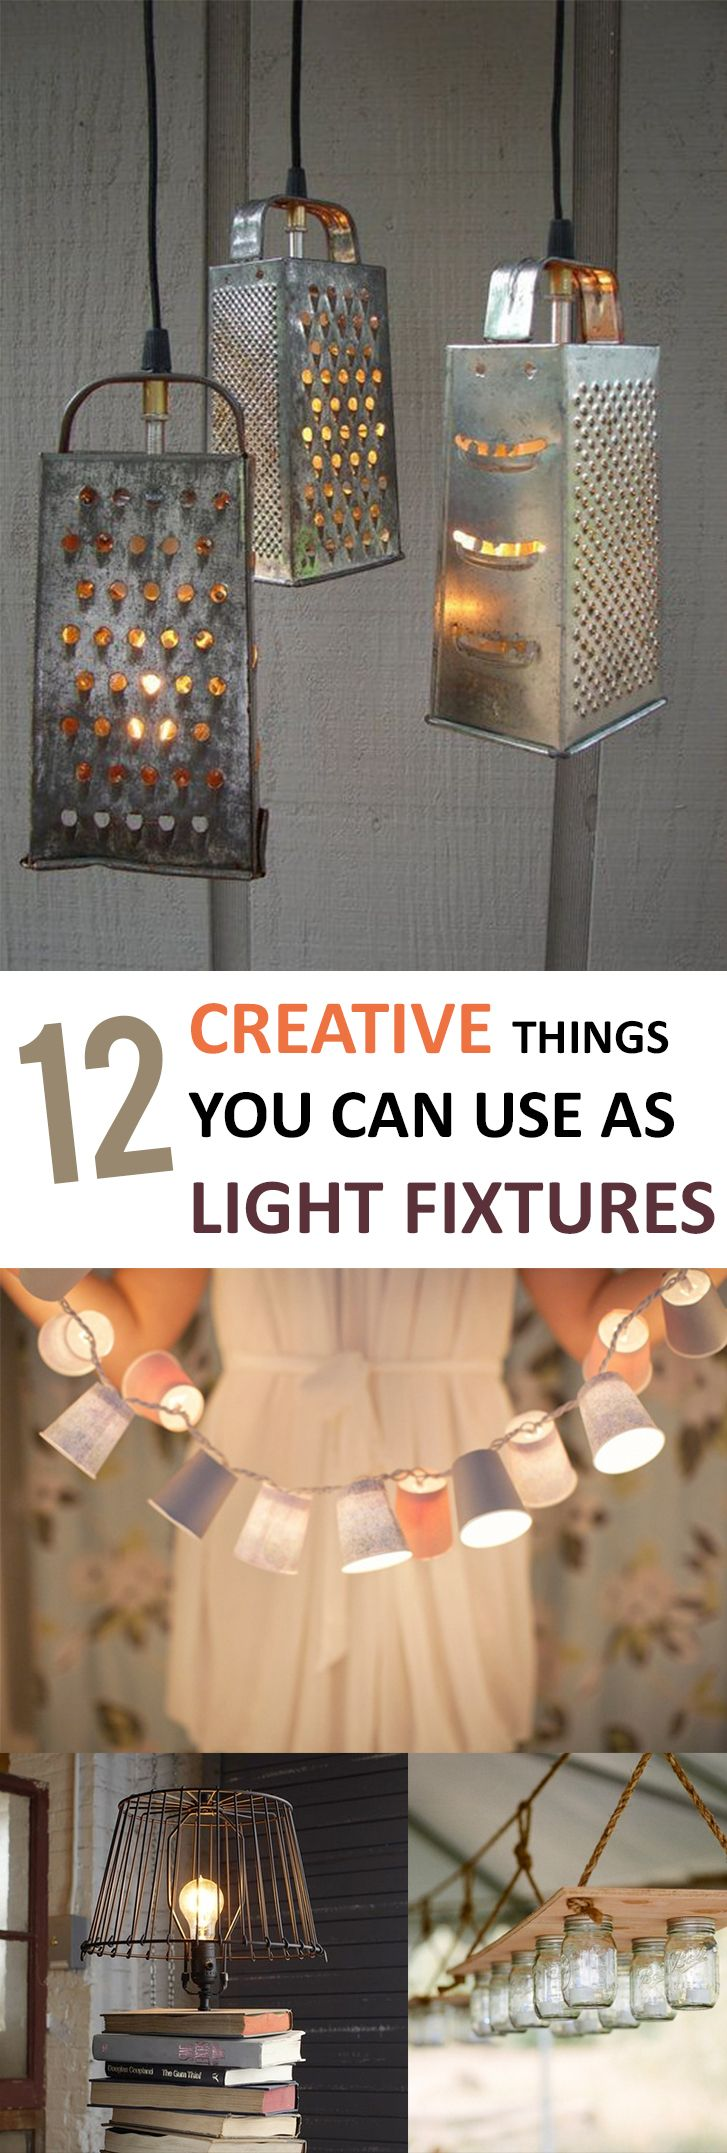 Totally creative ideas for light fixtures.